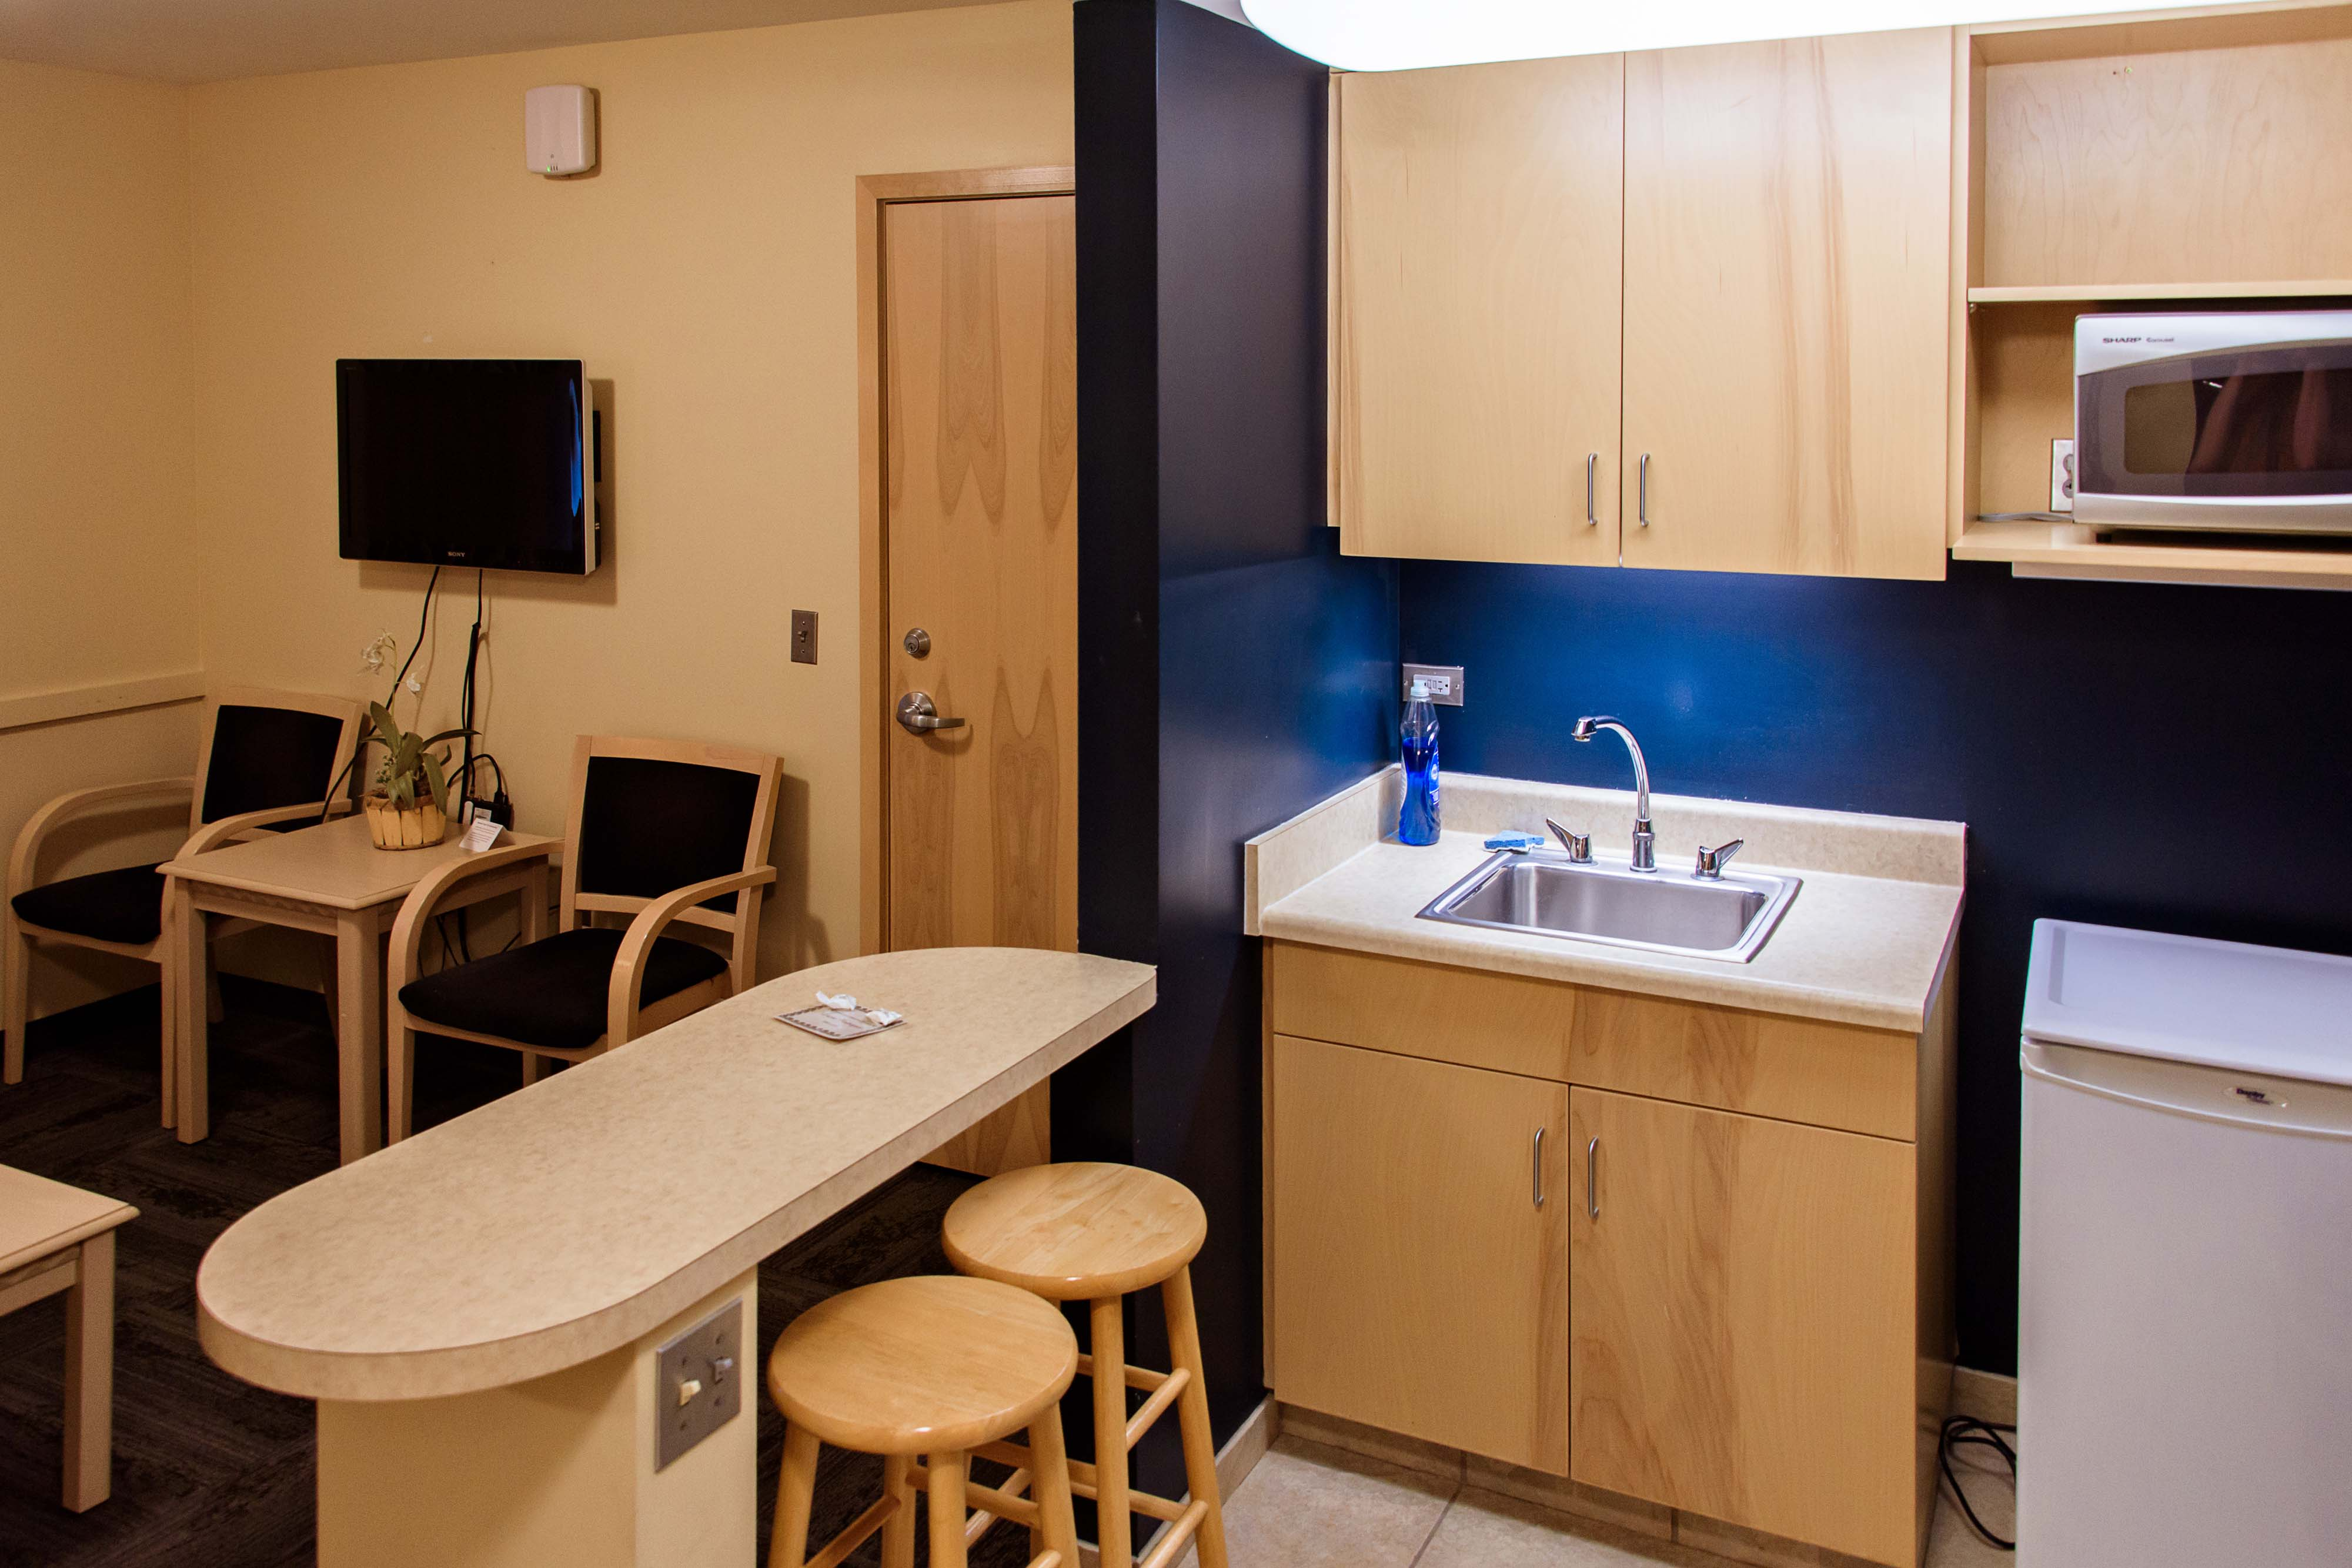 An angle showing off the kitchen and its appliances in the Ortner Center's 1-bedroom suite